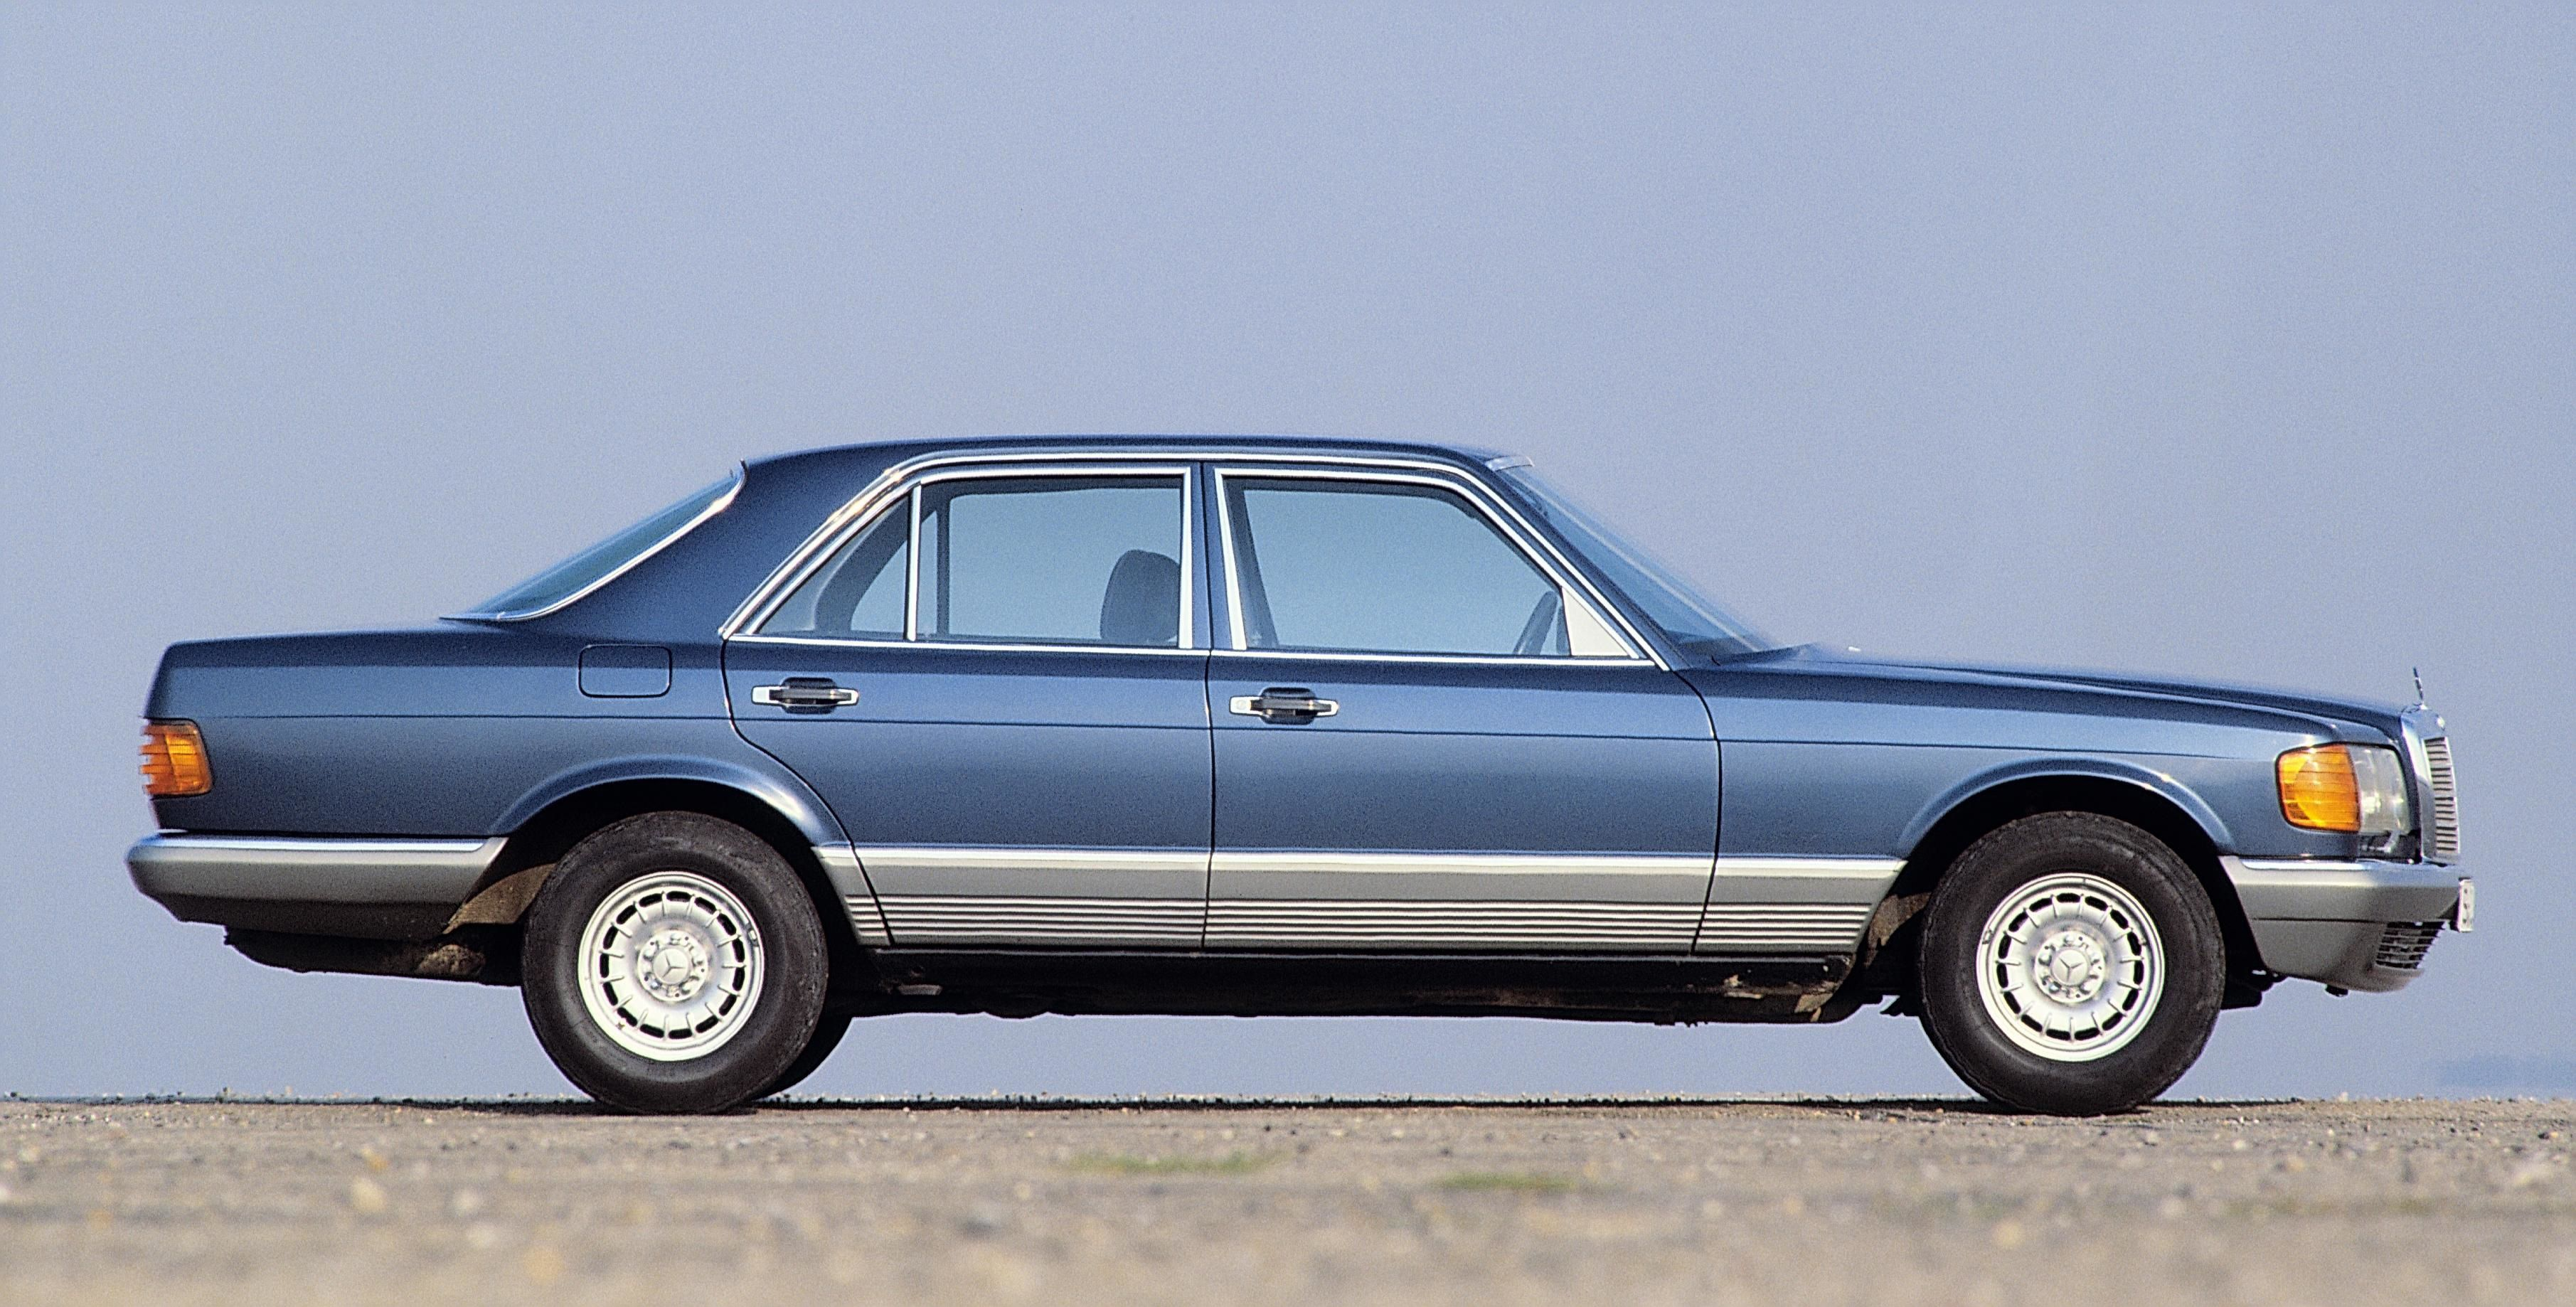 1979 85 mercedes benz 500 se w126 luxury cars. Black Bedroom Furniture Sets. Home Design Ideas